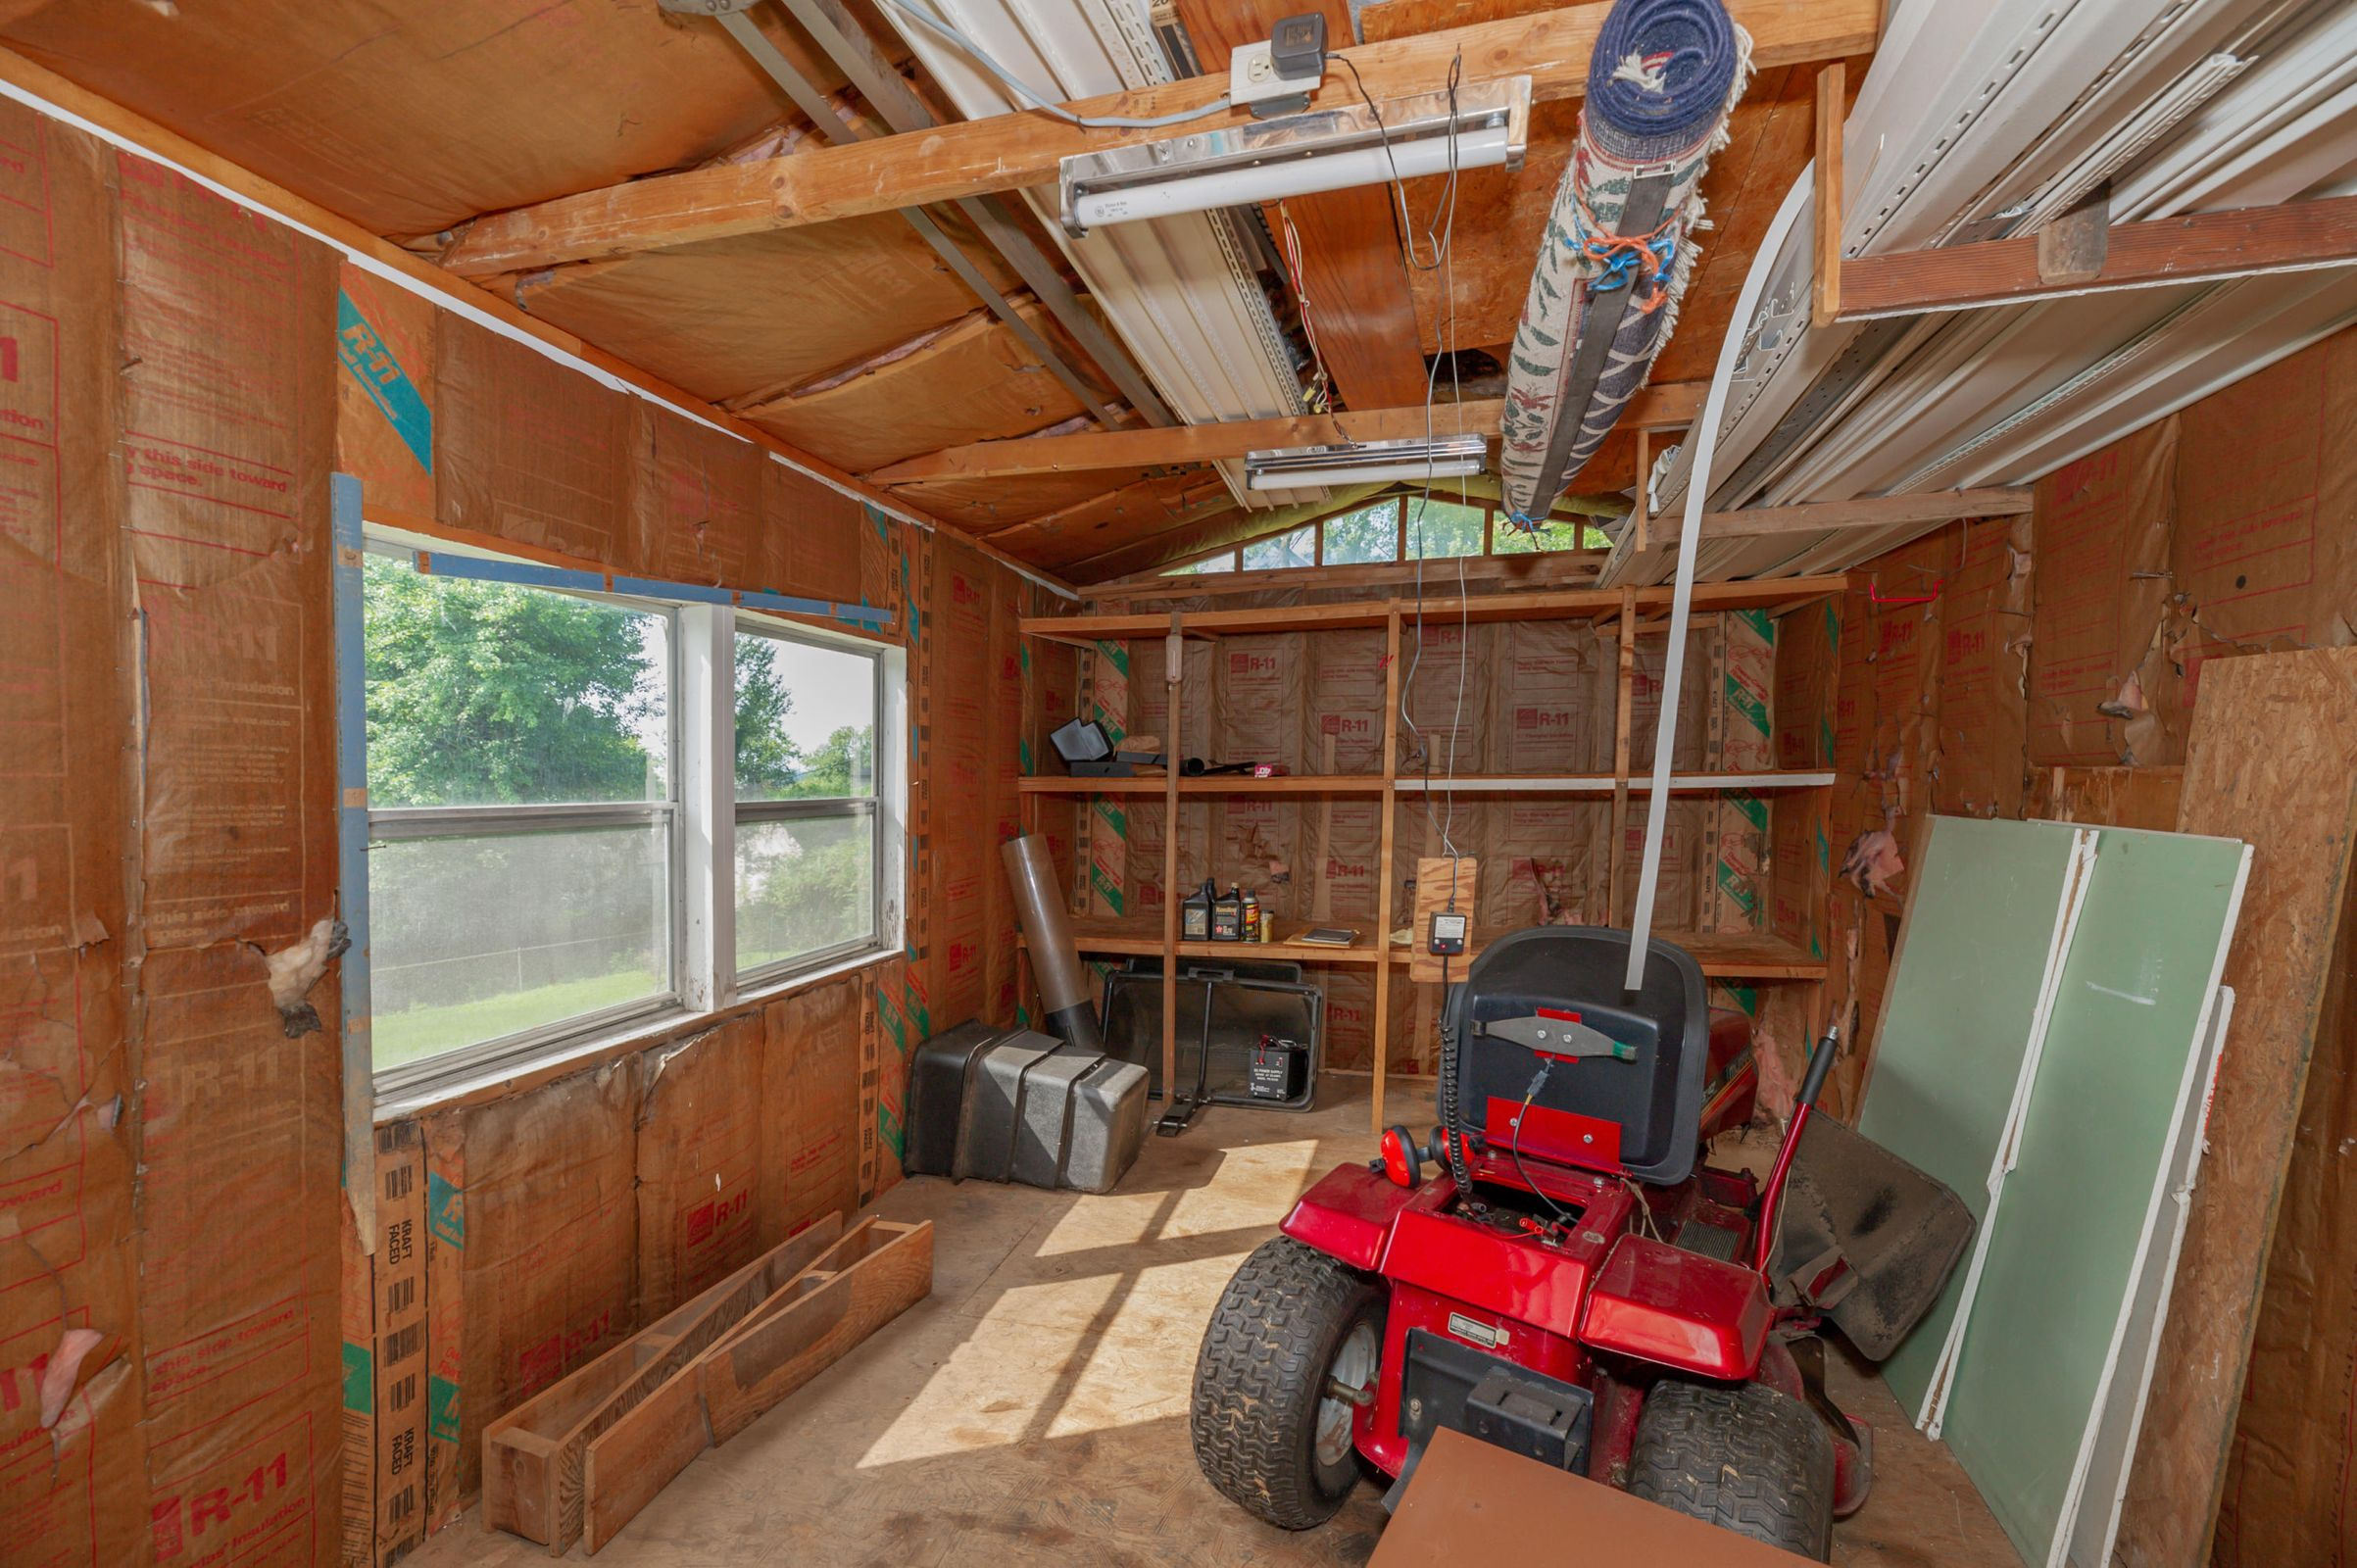 Storage Shed in Back Yard